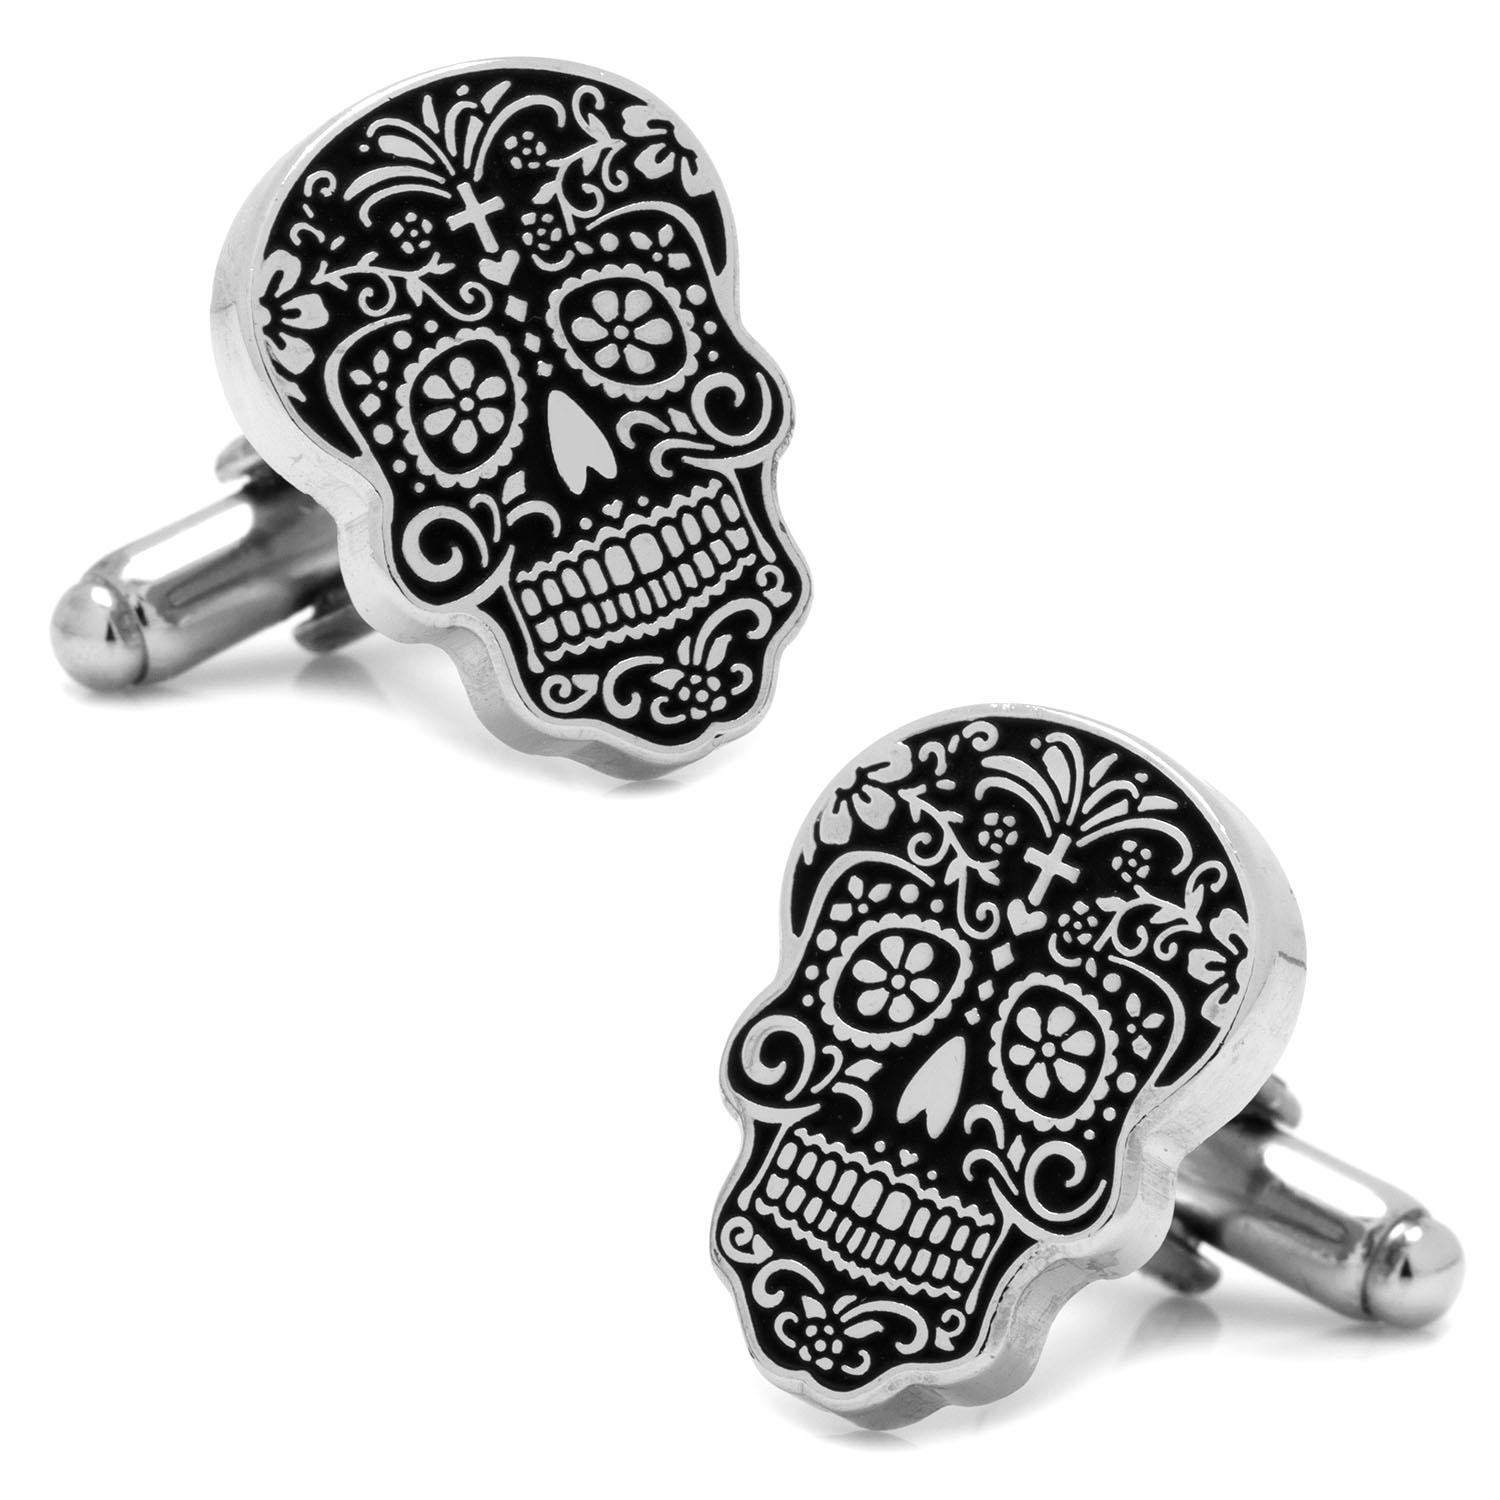 Men's Cufflinks Inc Silver Day of the Dead Cufflinks